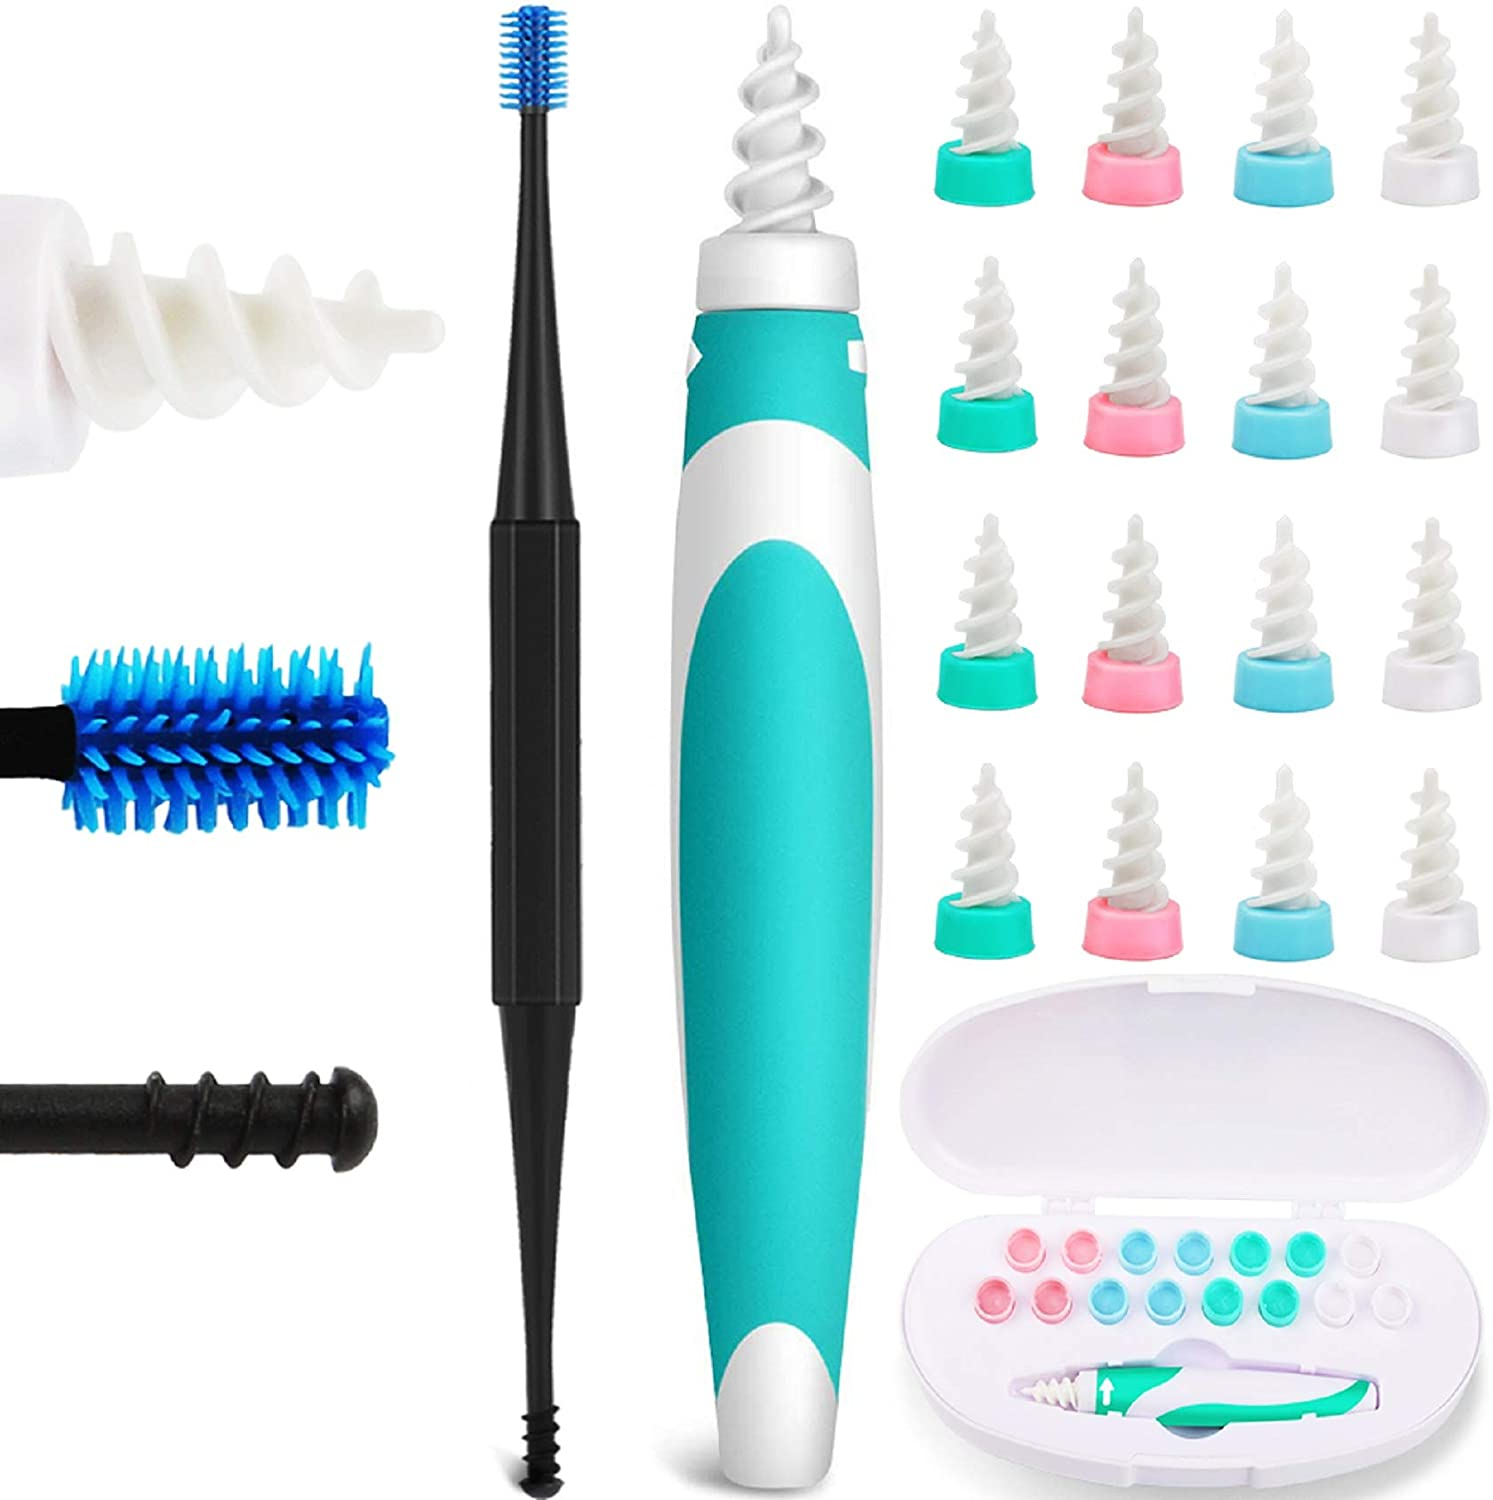 Q-Grips Earwax Attention brand Remover Silicone E Max 66% OFF Ear-Wax-Removal-Tool Soft Safe